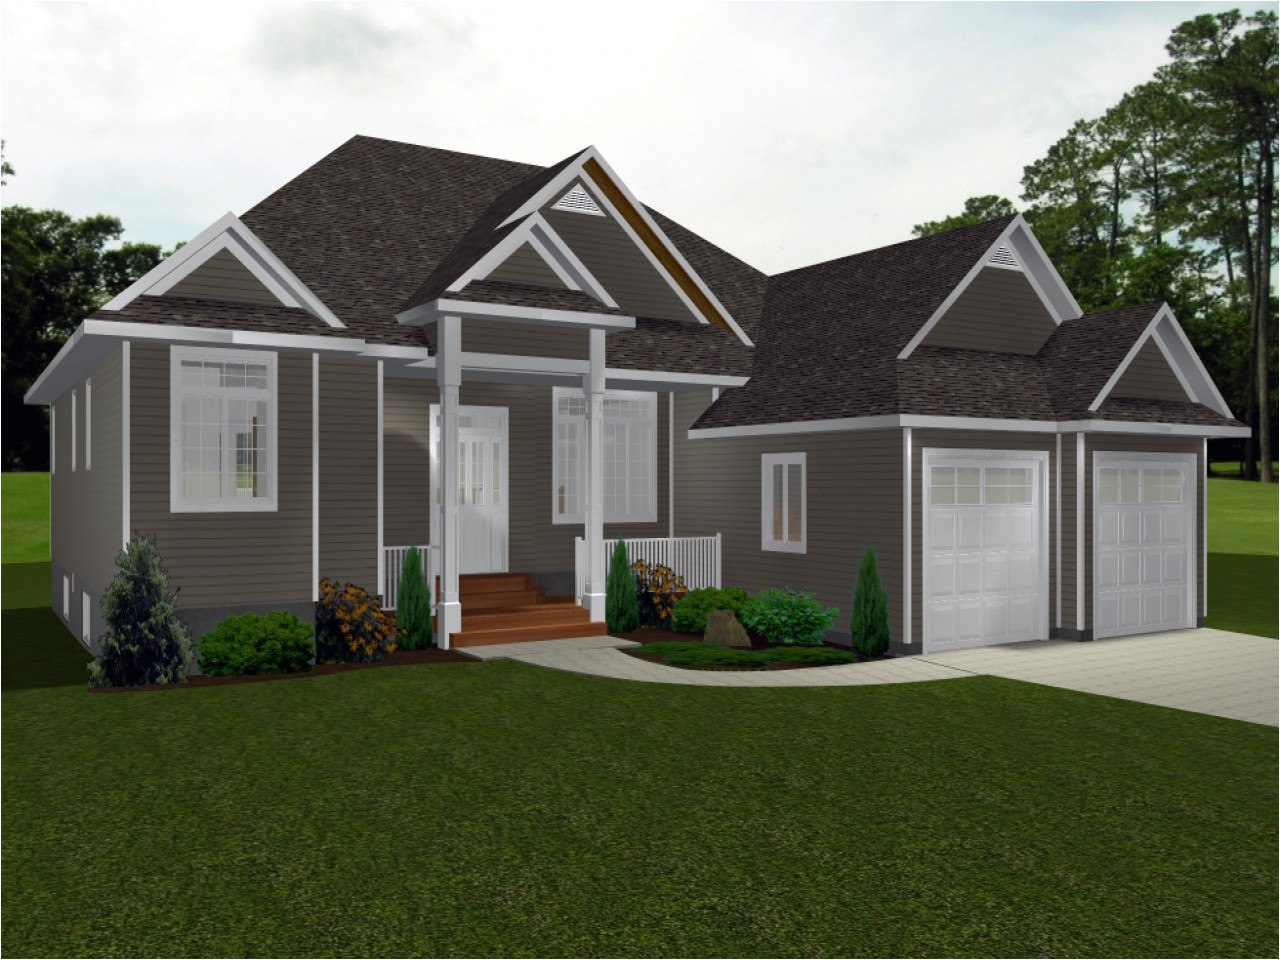 9aa69a9b6ce13ae1 modern bungalow house plans canadian bungalow house plans